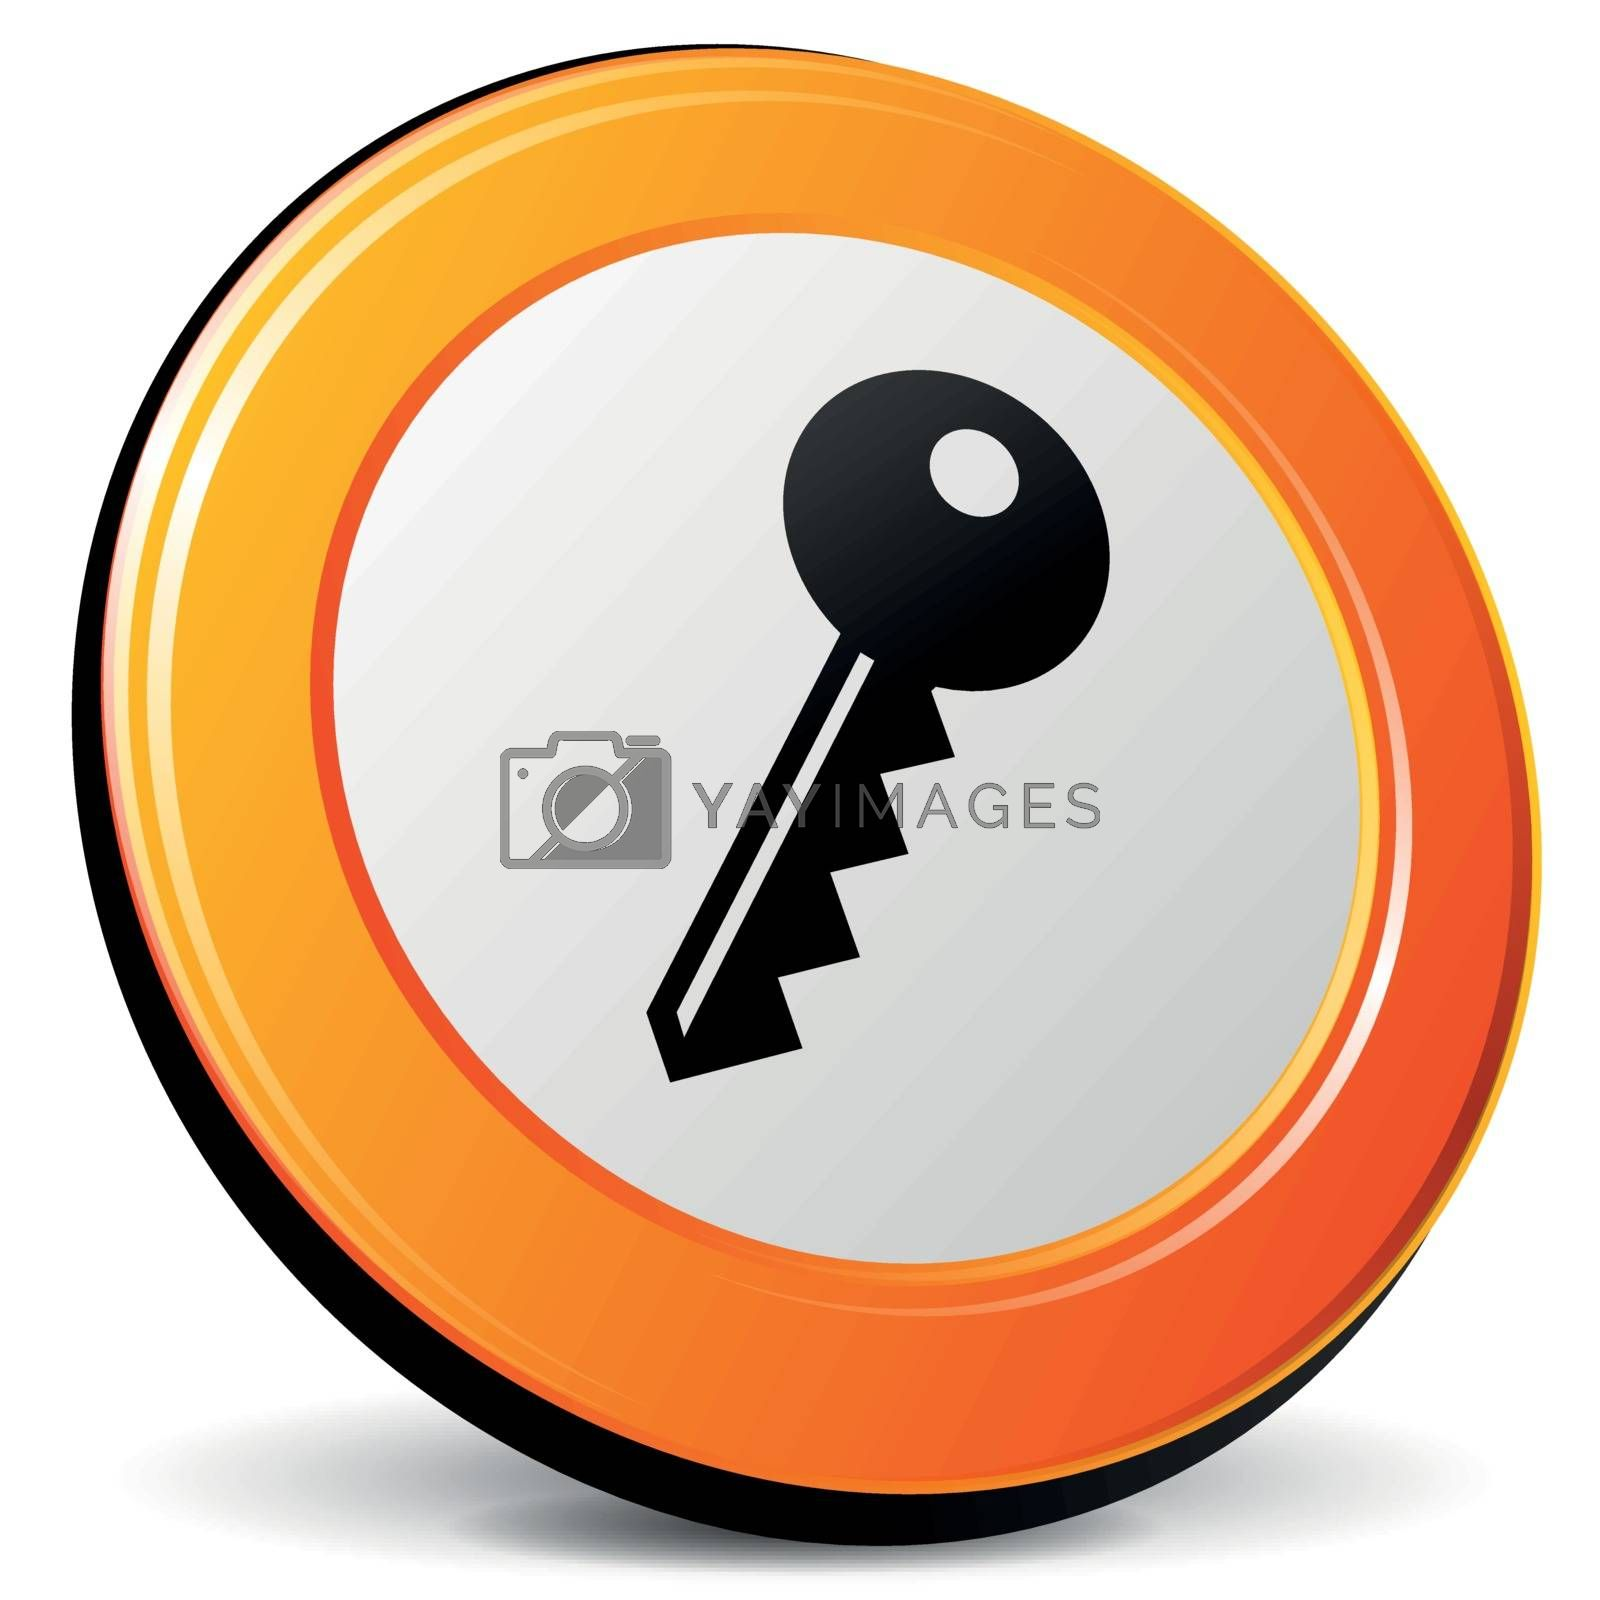 Royalty free image of Vector key icon by nickylarson974